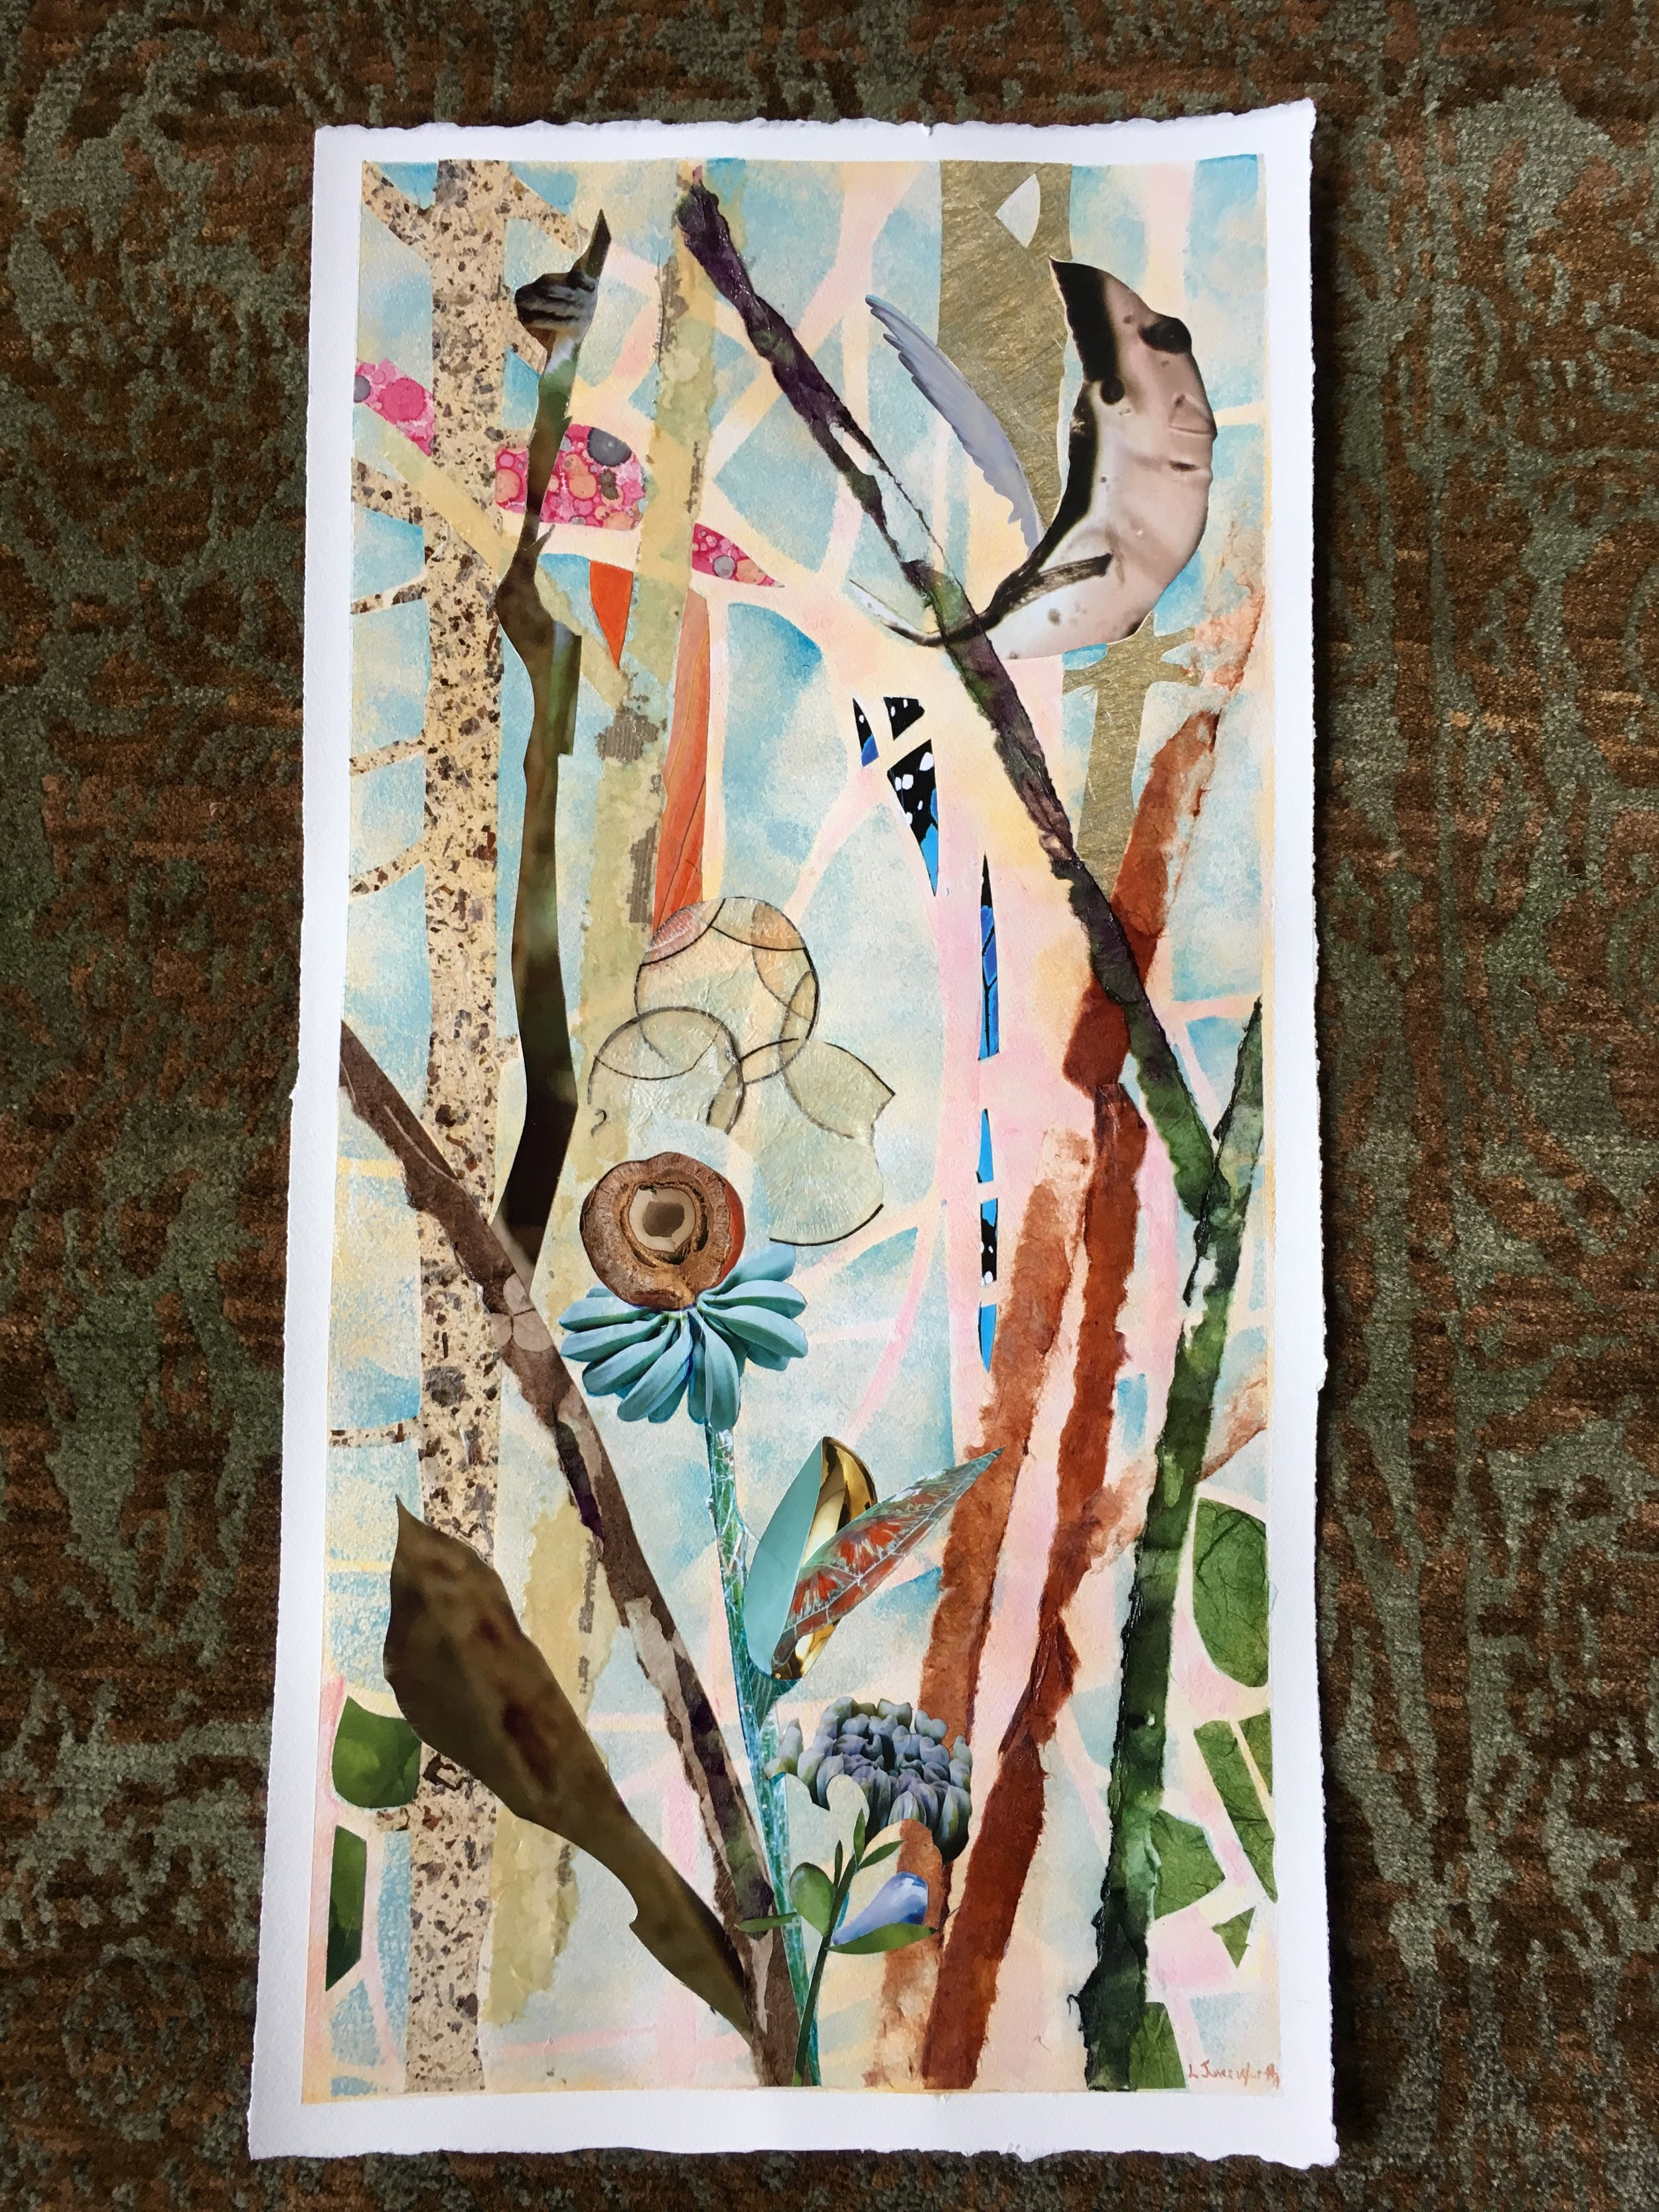 TREE SPIRITS II, 16x8, mixed media collage on paper (2017)